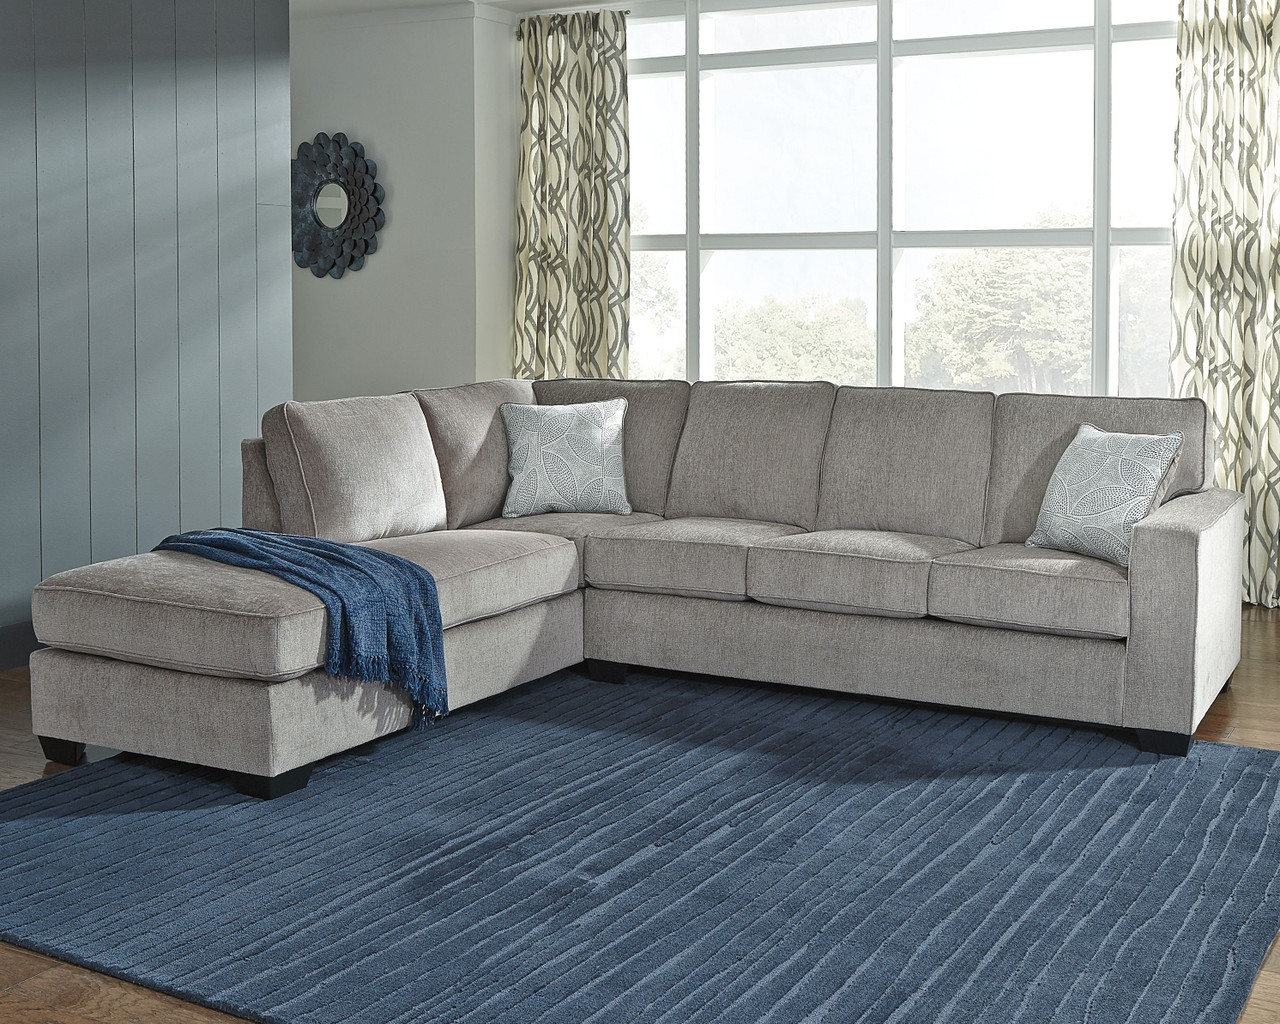 altari alloy laf corner chaise raf sofa sectional